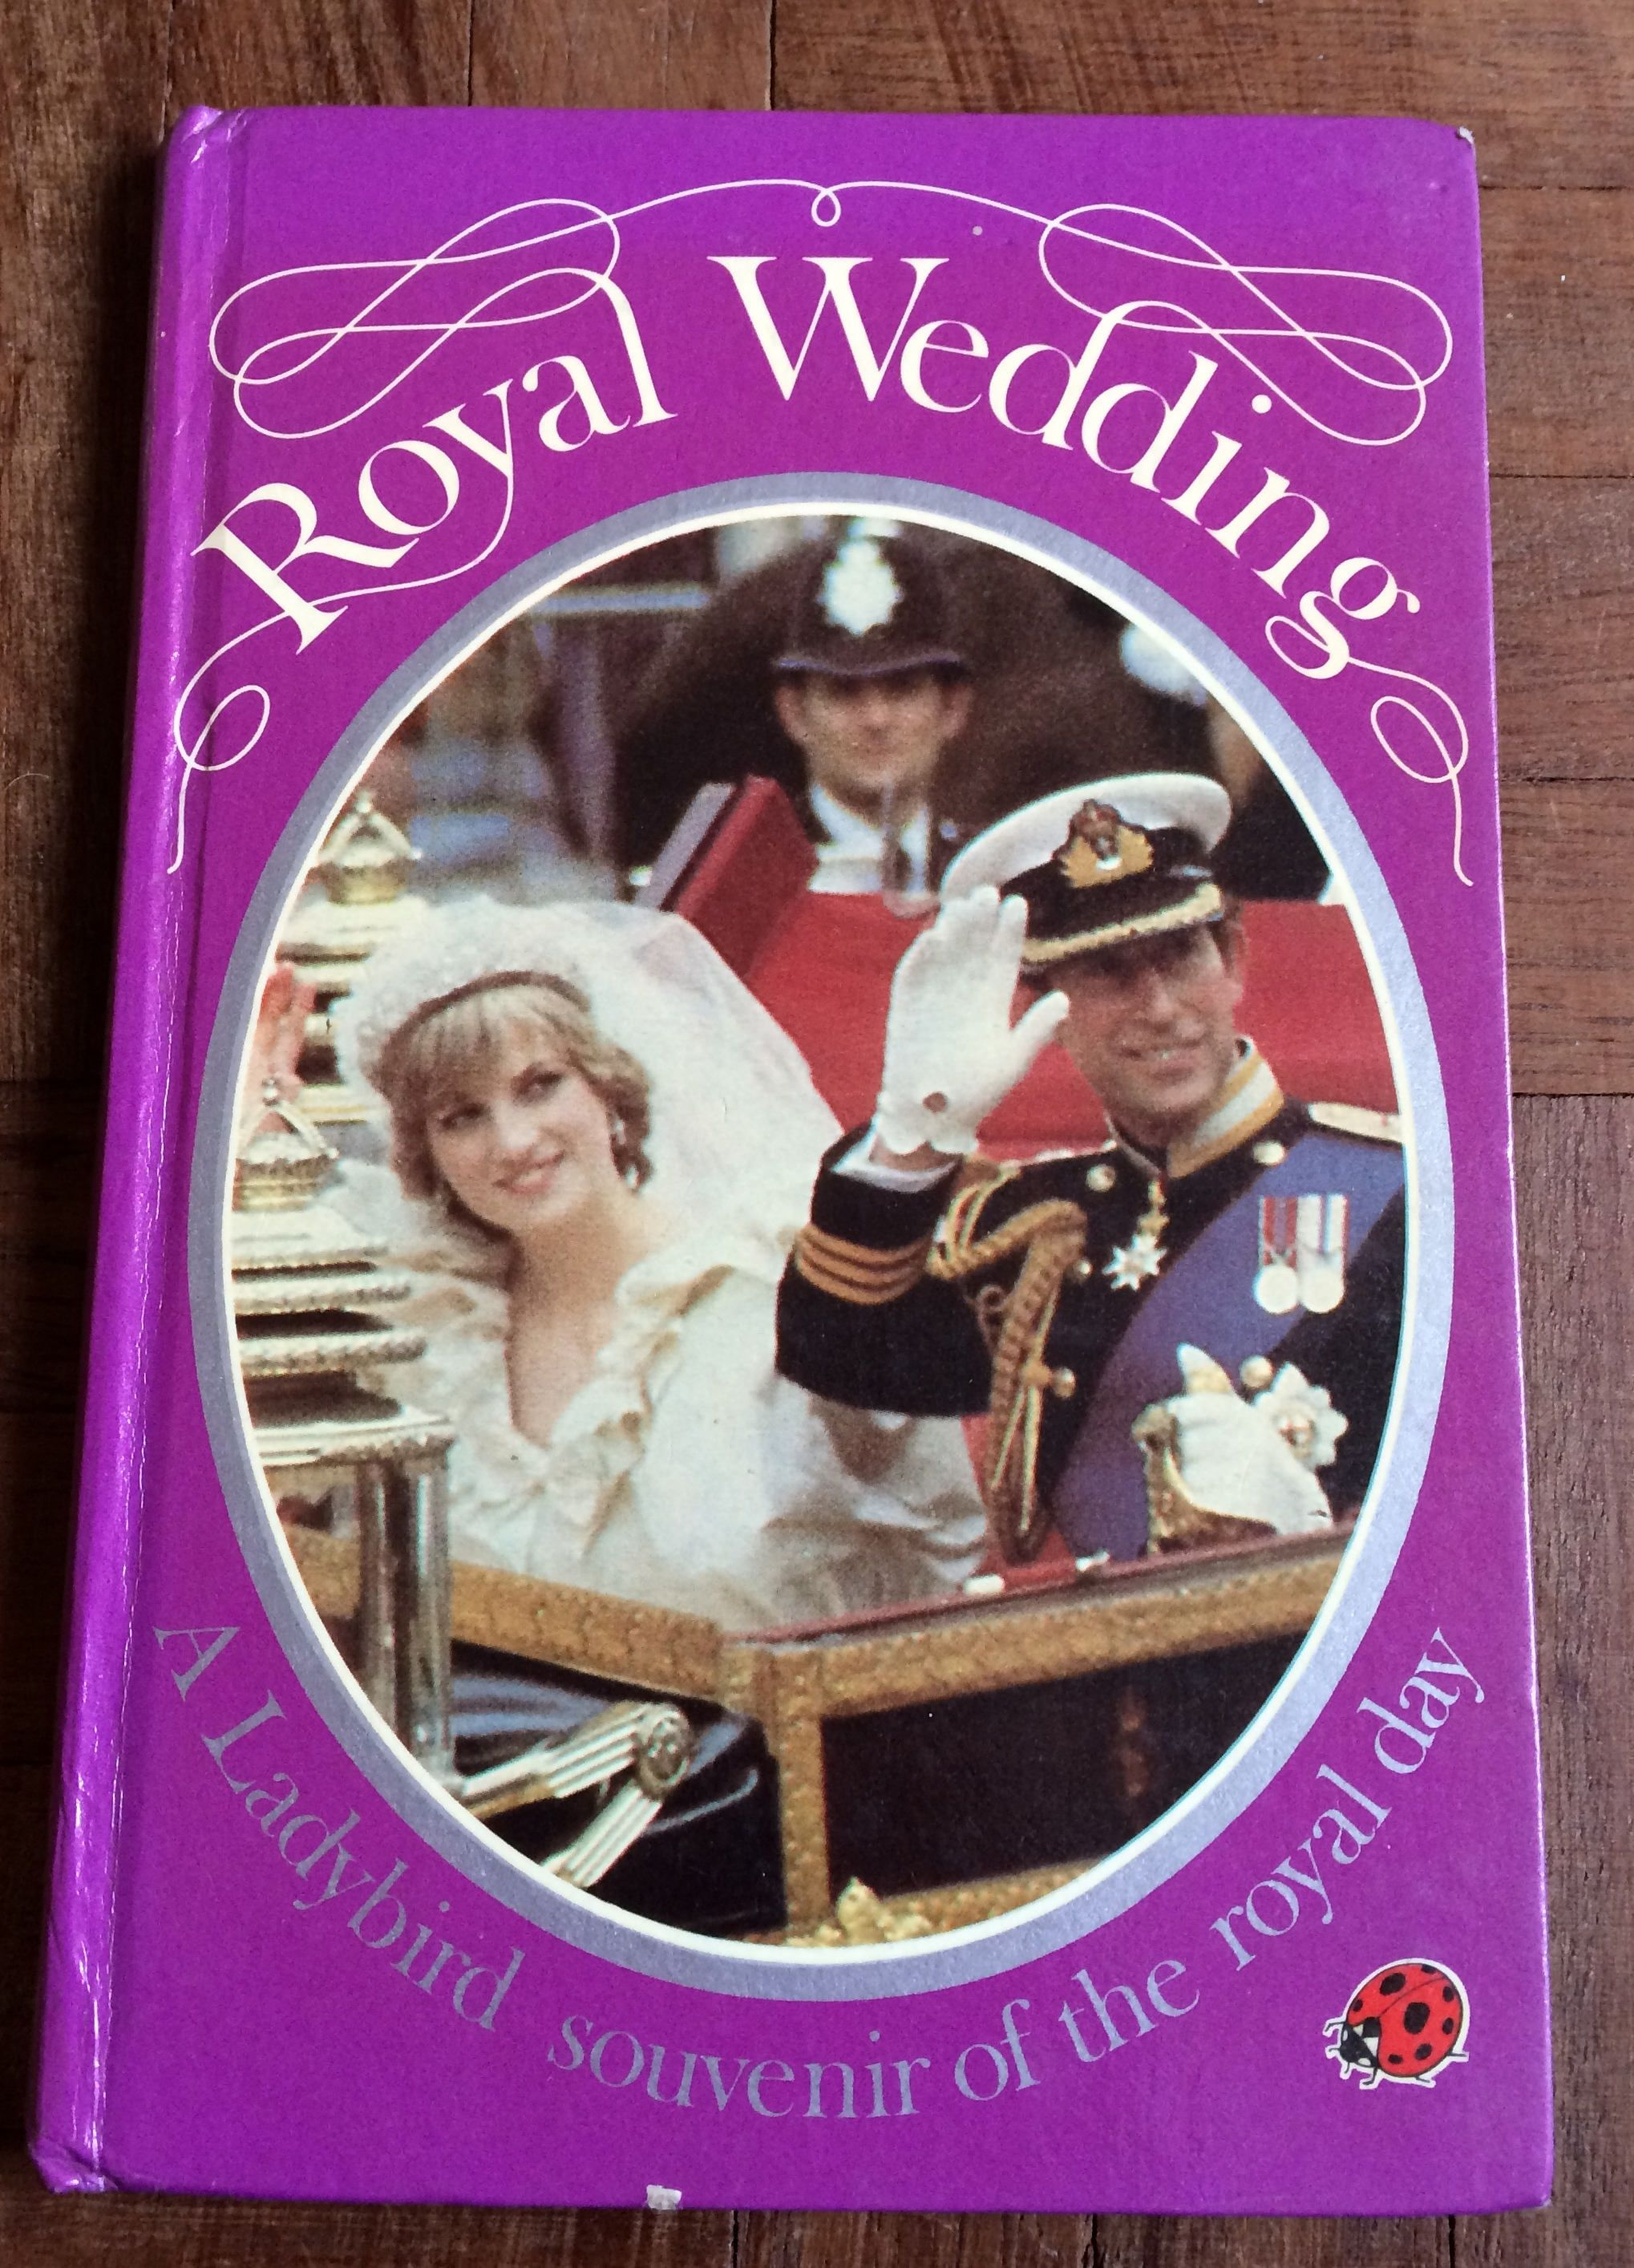 Vintage Ladybird Book Royal Wedding Prince Charles And Lady Diana Souvenir First Edition 1981 Memorabilia By Vintagepurplebooks On Etsy